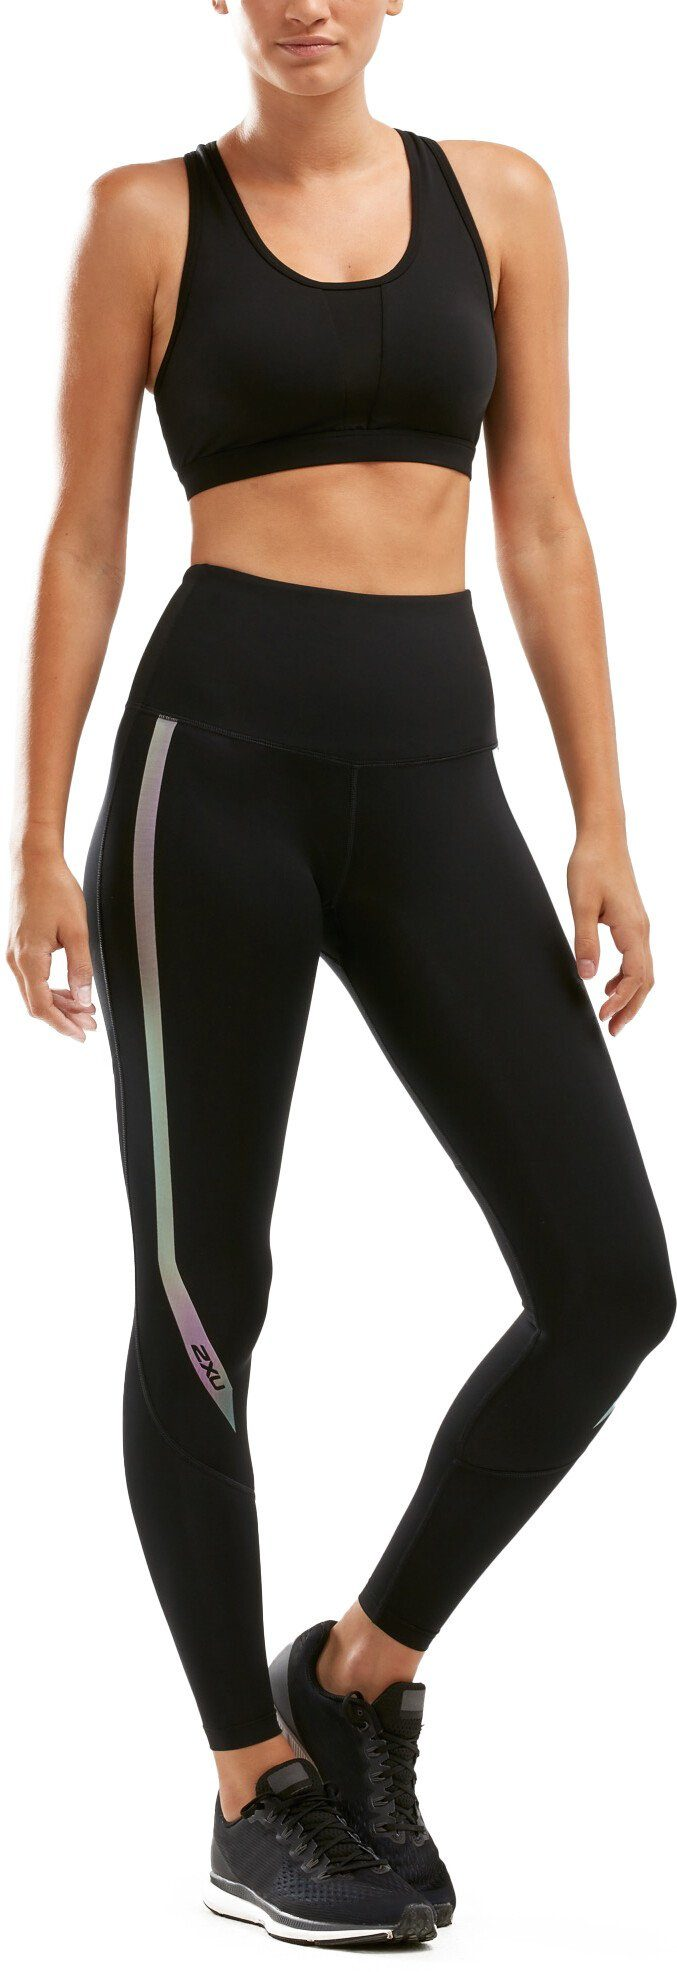 2xU Hose Hi Rise Compression Tights Damen kaufen 0vyiRw ZJYzpw